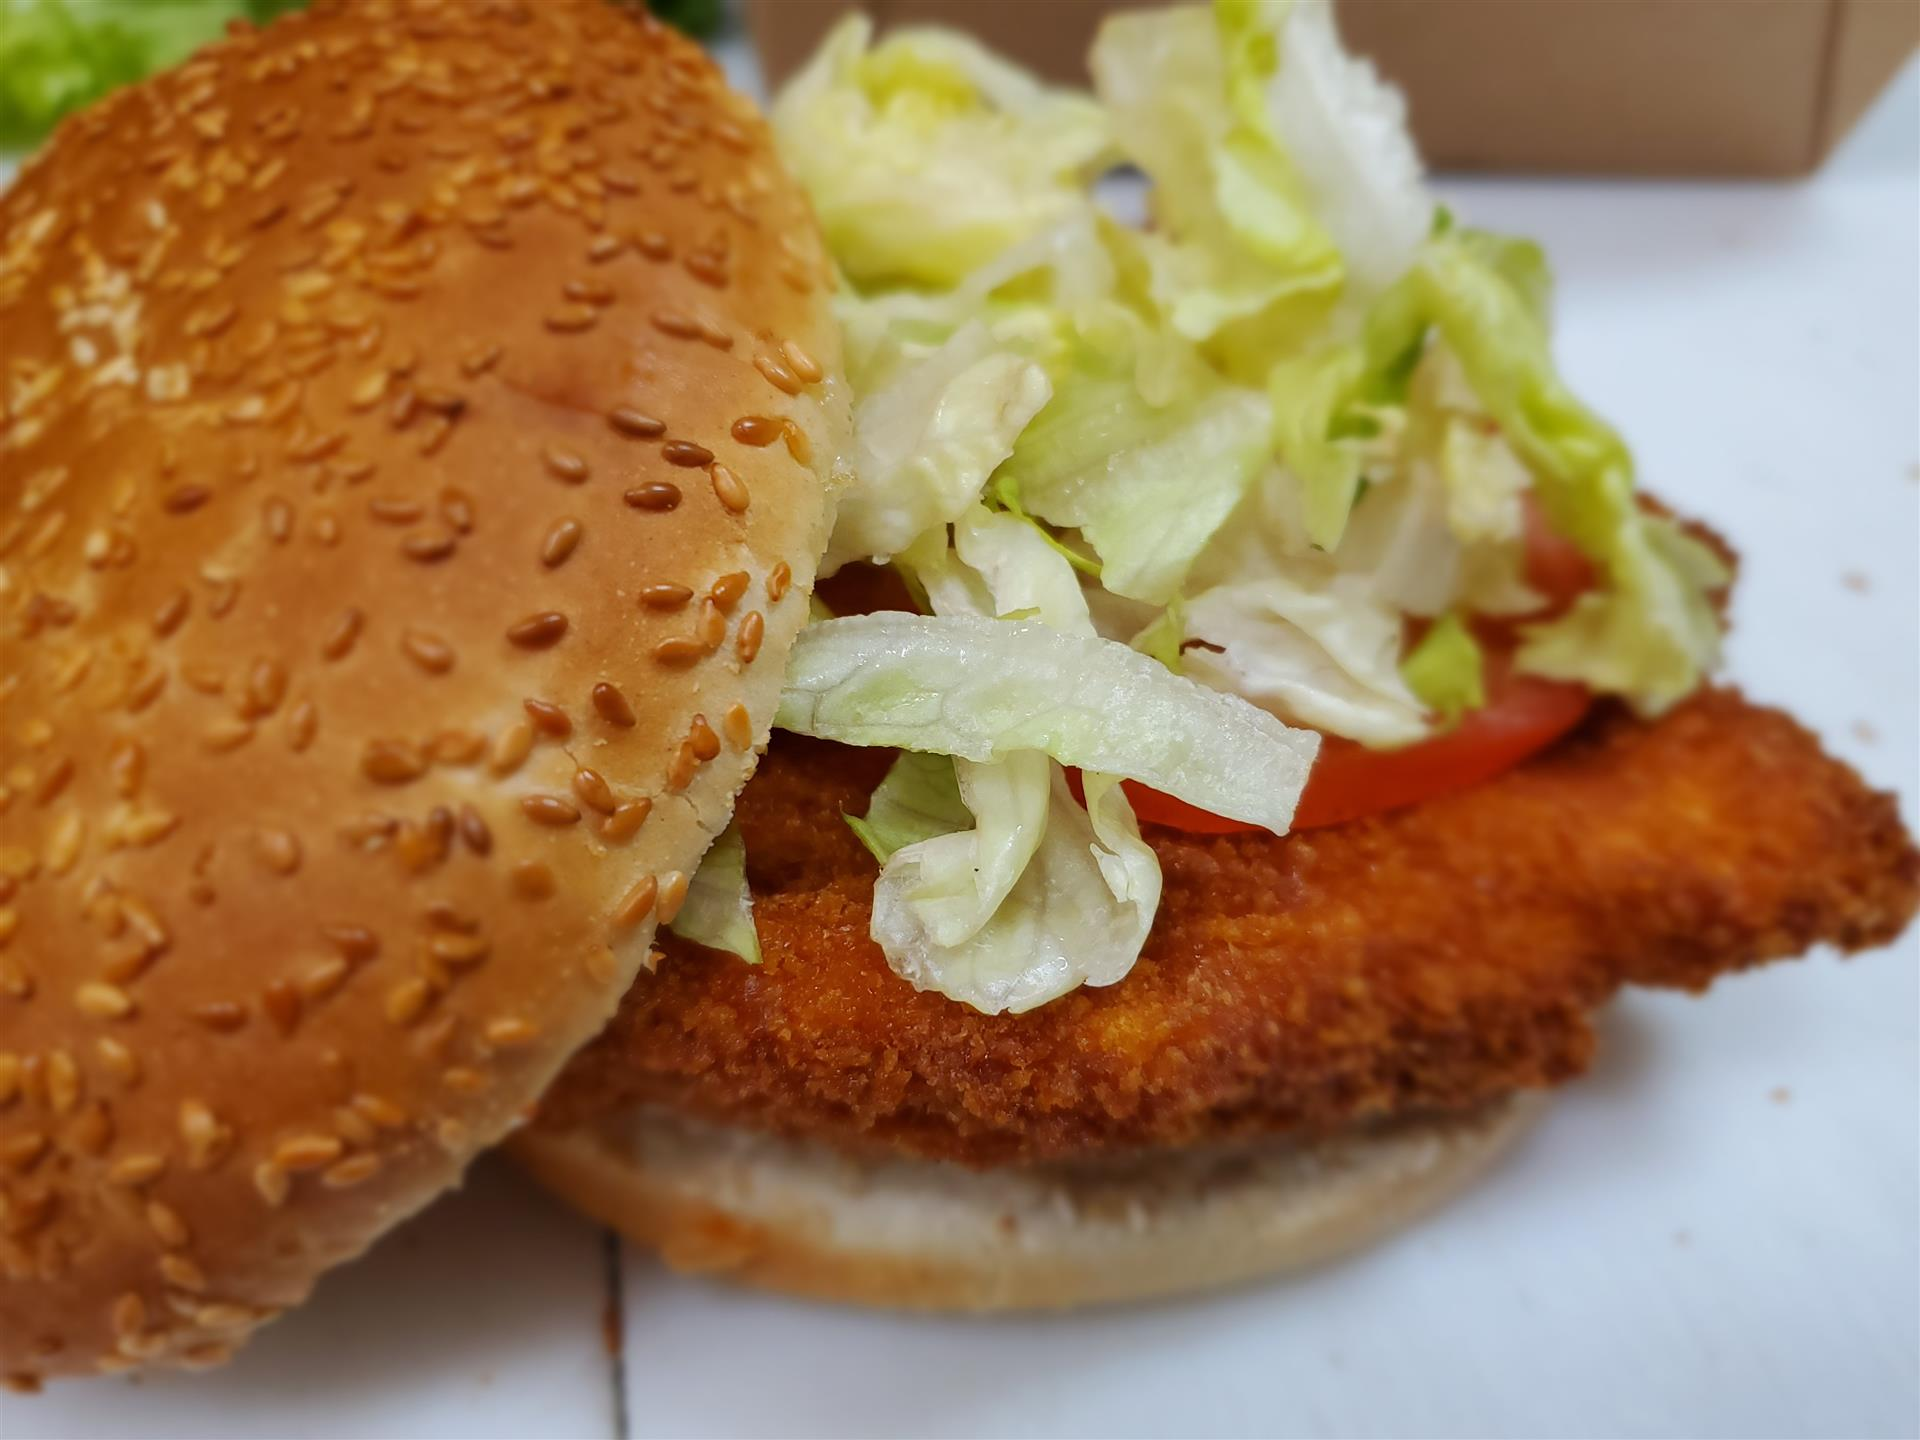 crispy chicken sandwich with shredded lettuce and tomato